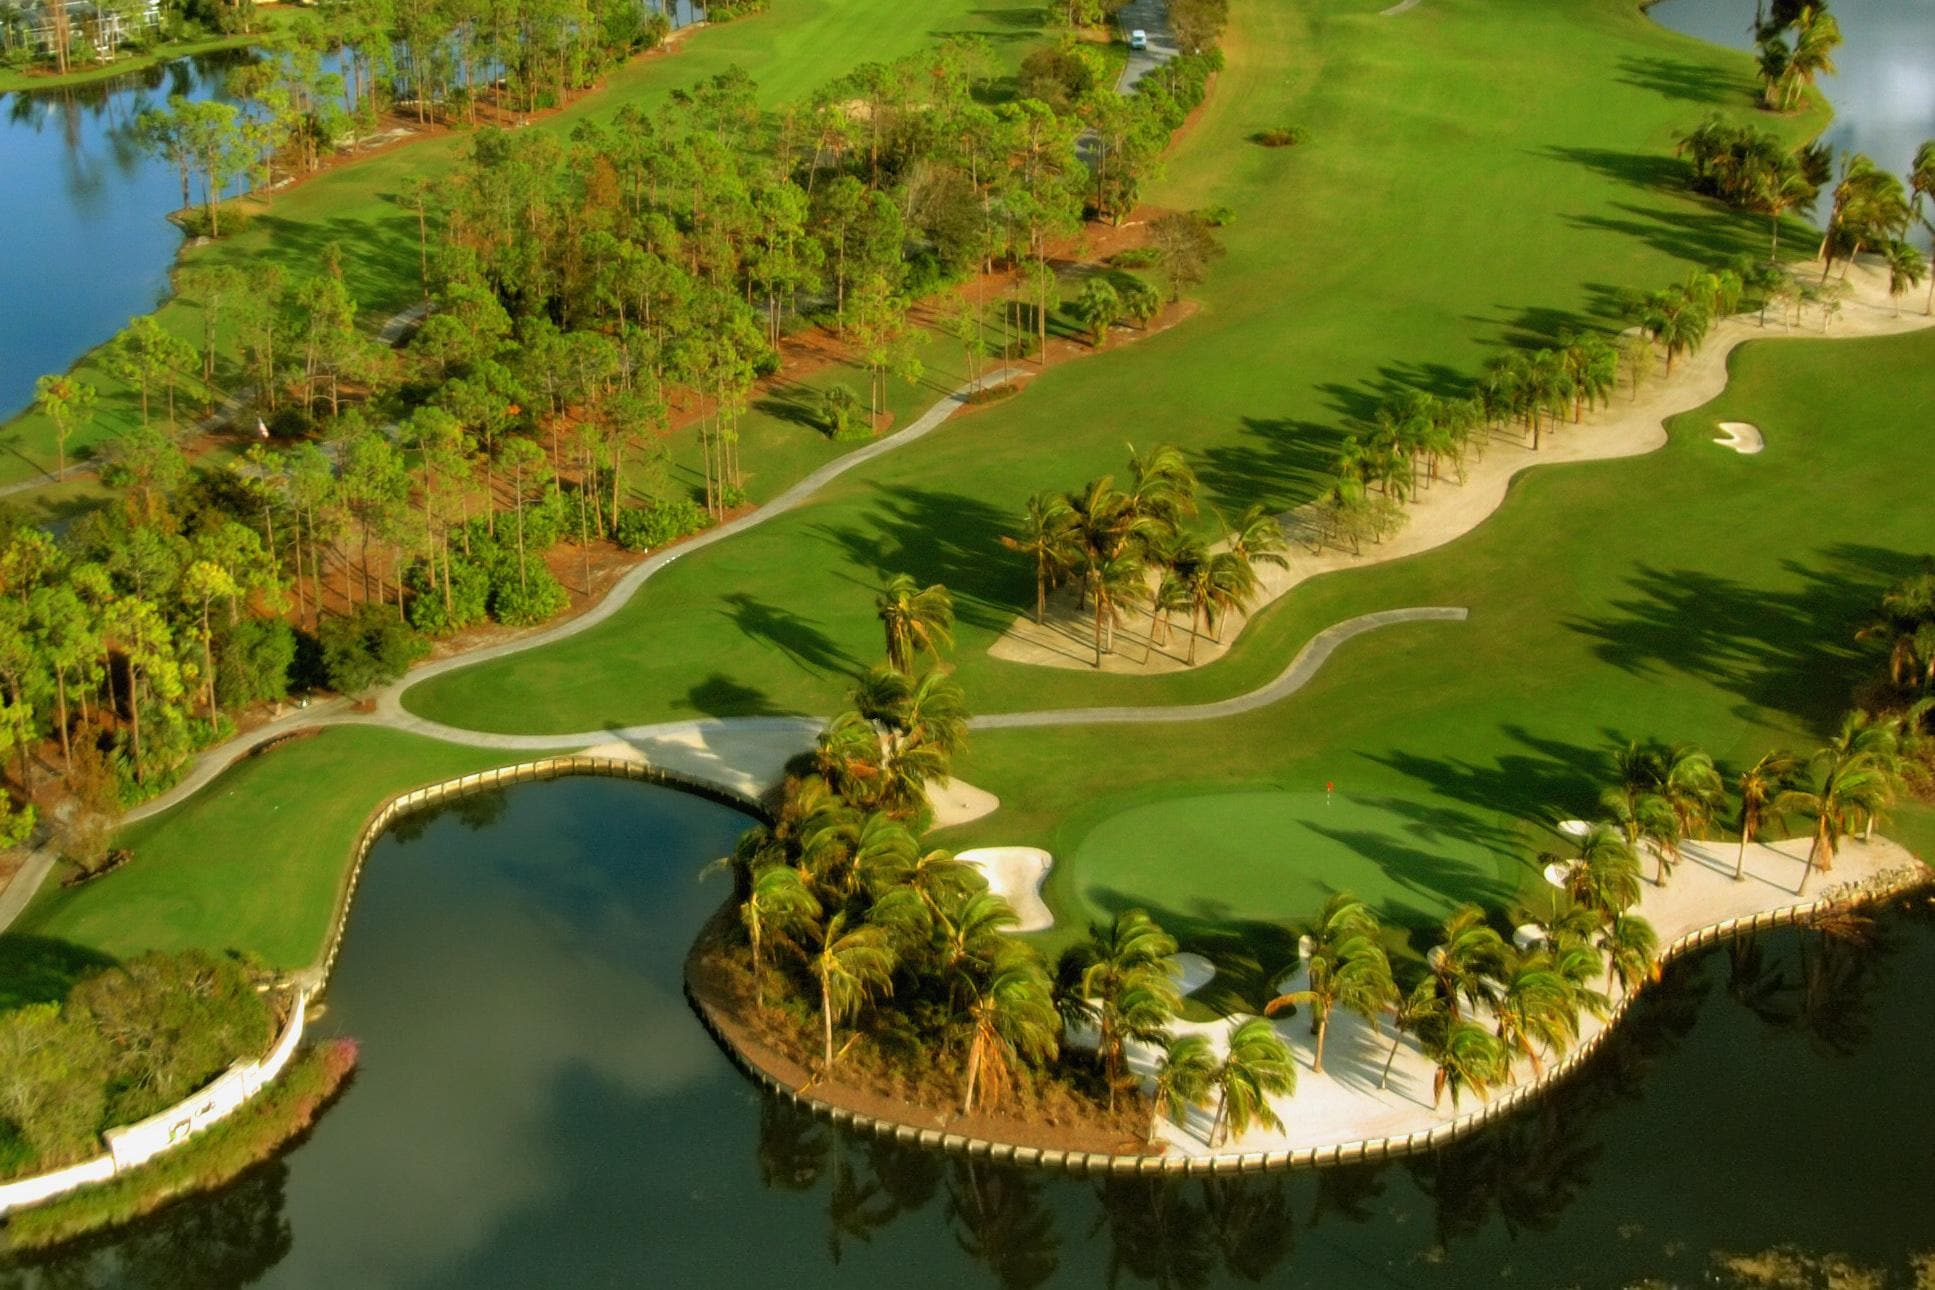 Play a round of golf at one of the many local courses.